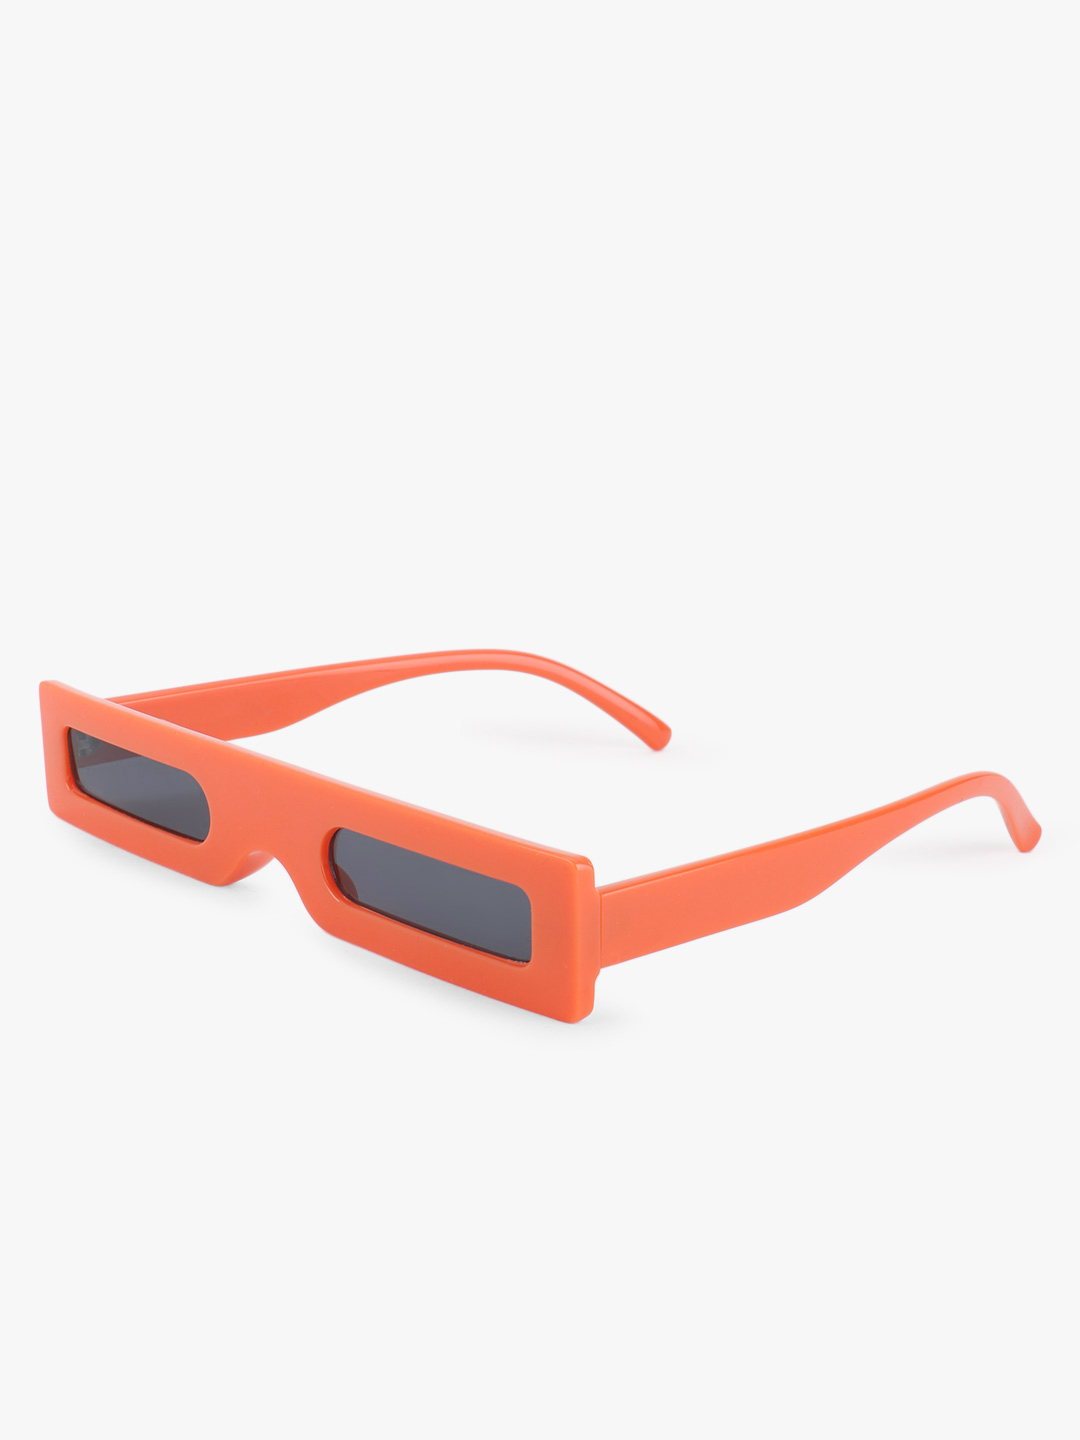 Pataaka Red Retro Sunglasses With Broad Frame 1